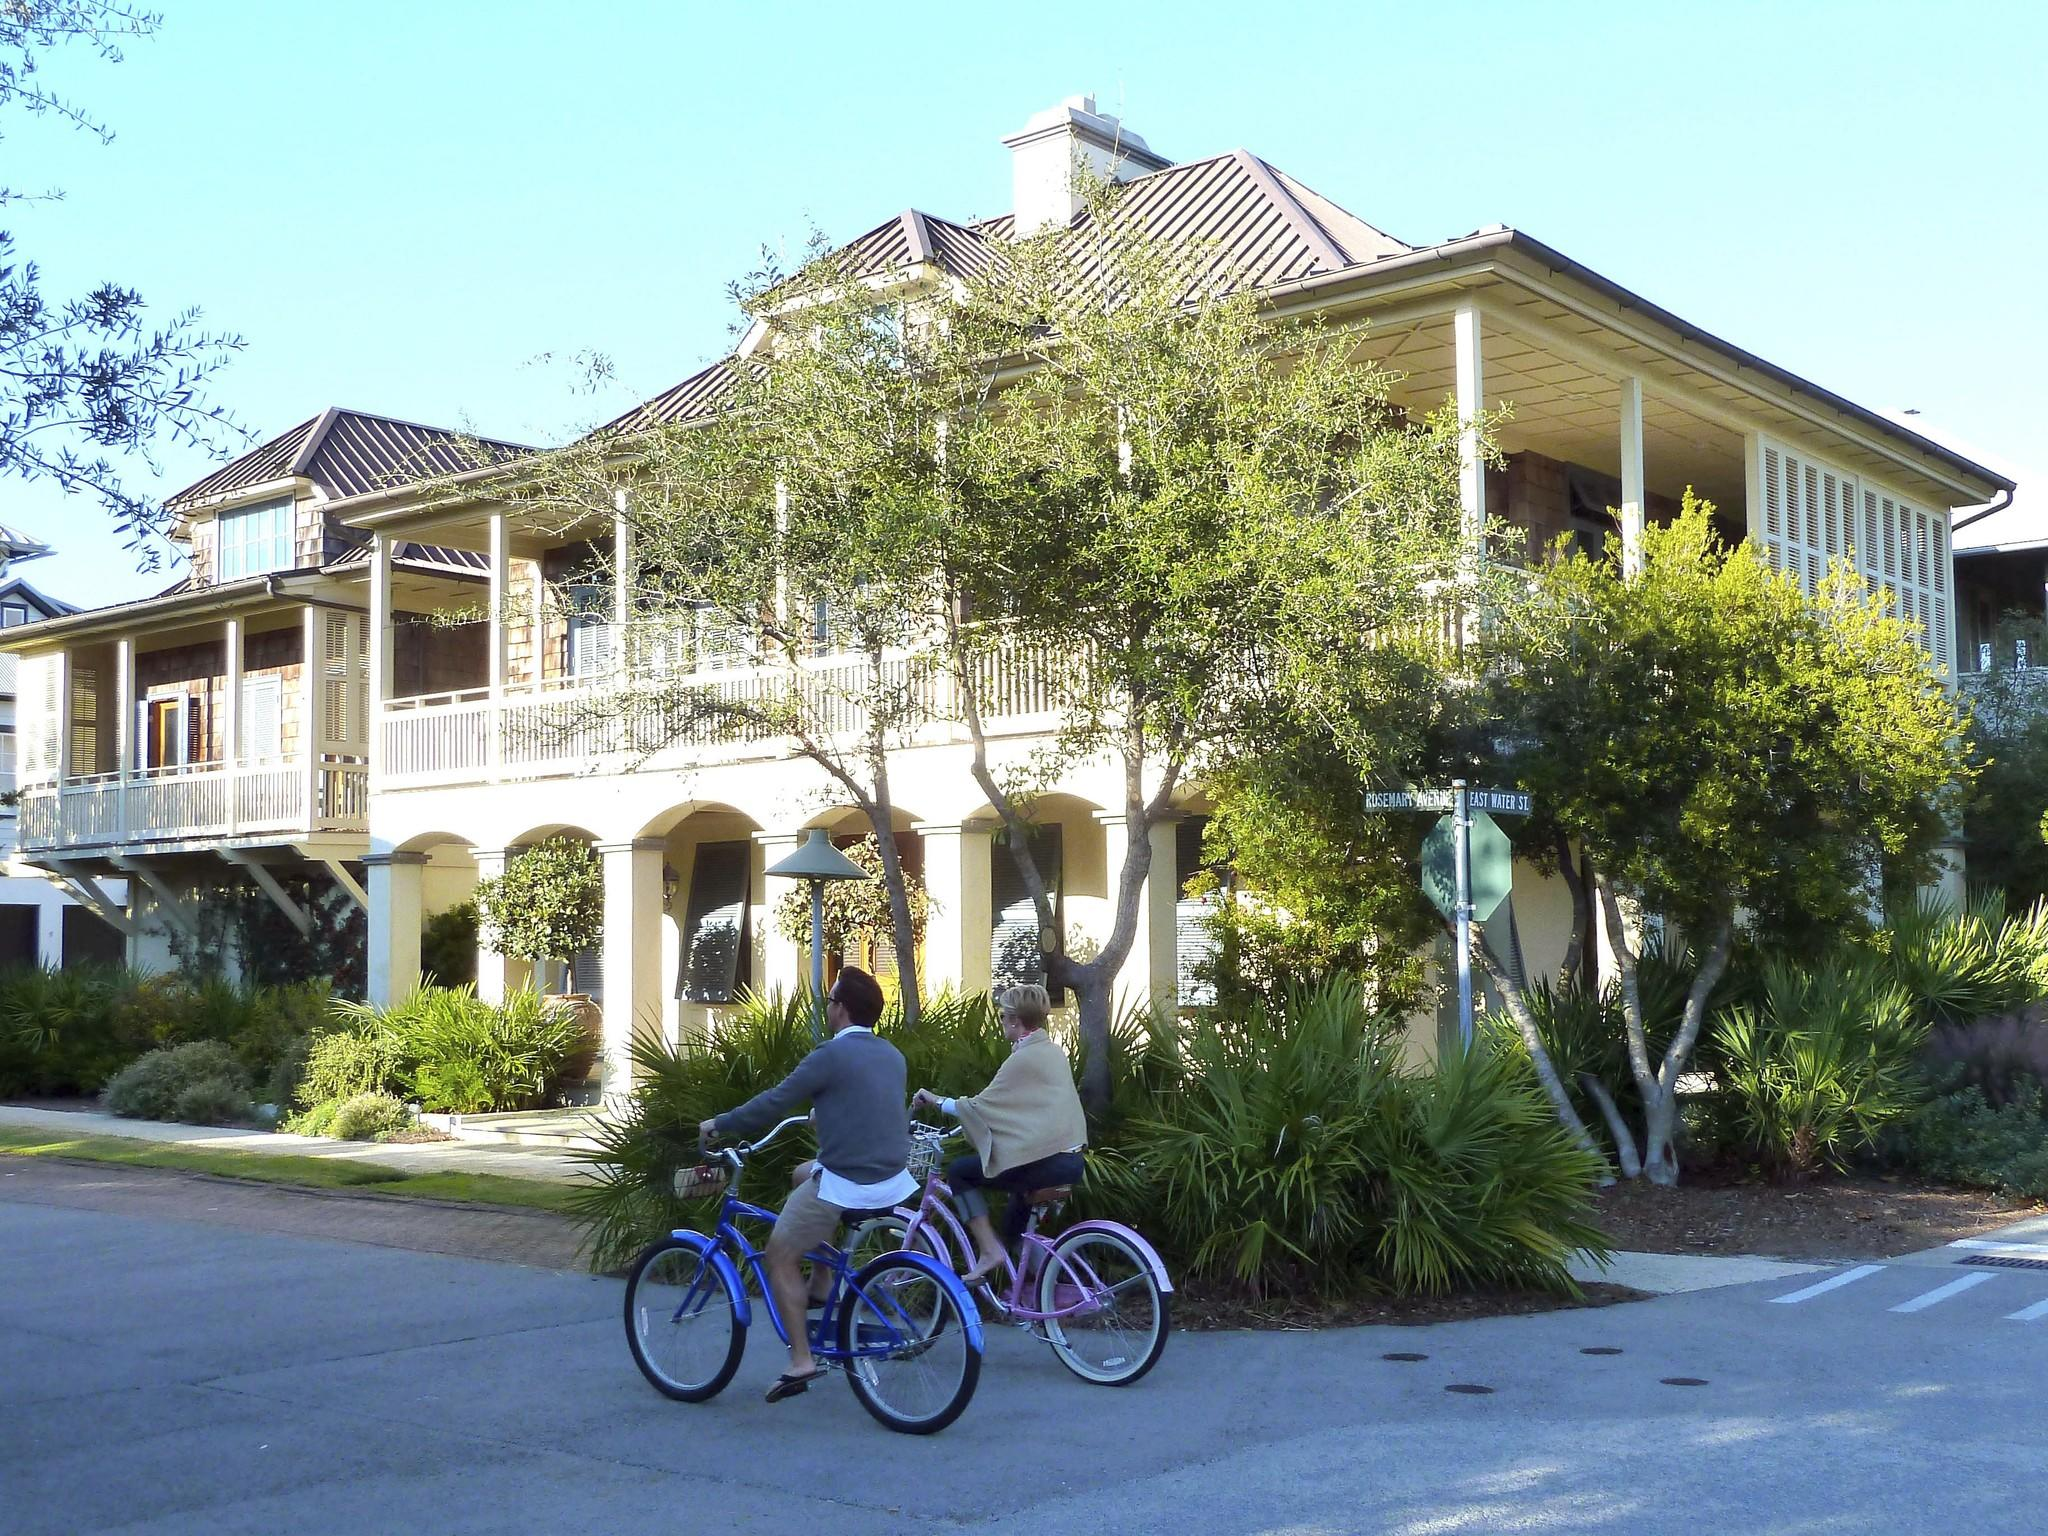 Florida panhandle destinations sunsets beaches are part for Coastal towns in florida